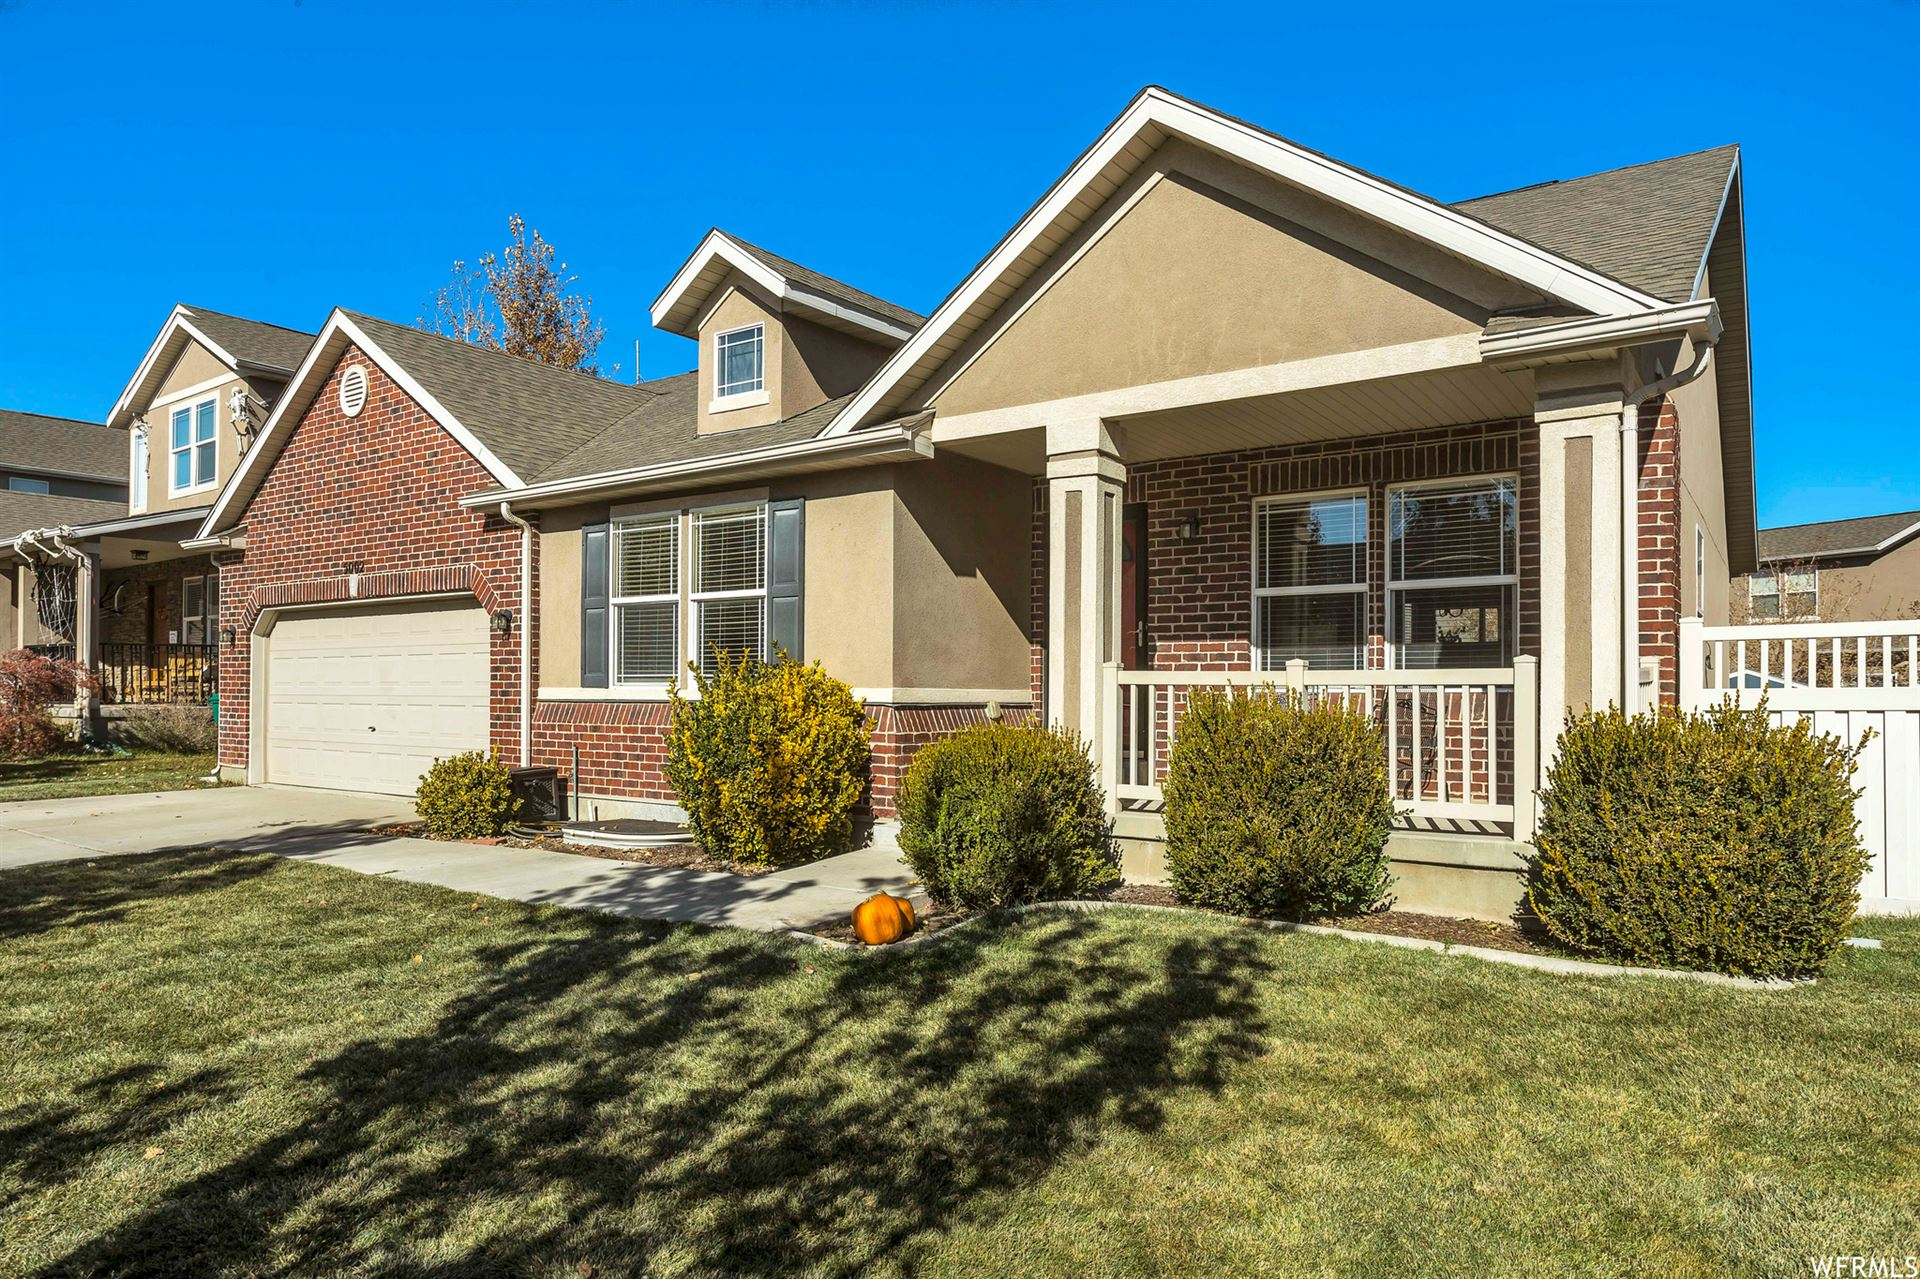 Photo of 5002 W GREENSTREAK DR, Riverton, UT 84096 (MLS # 1727573)